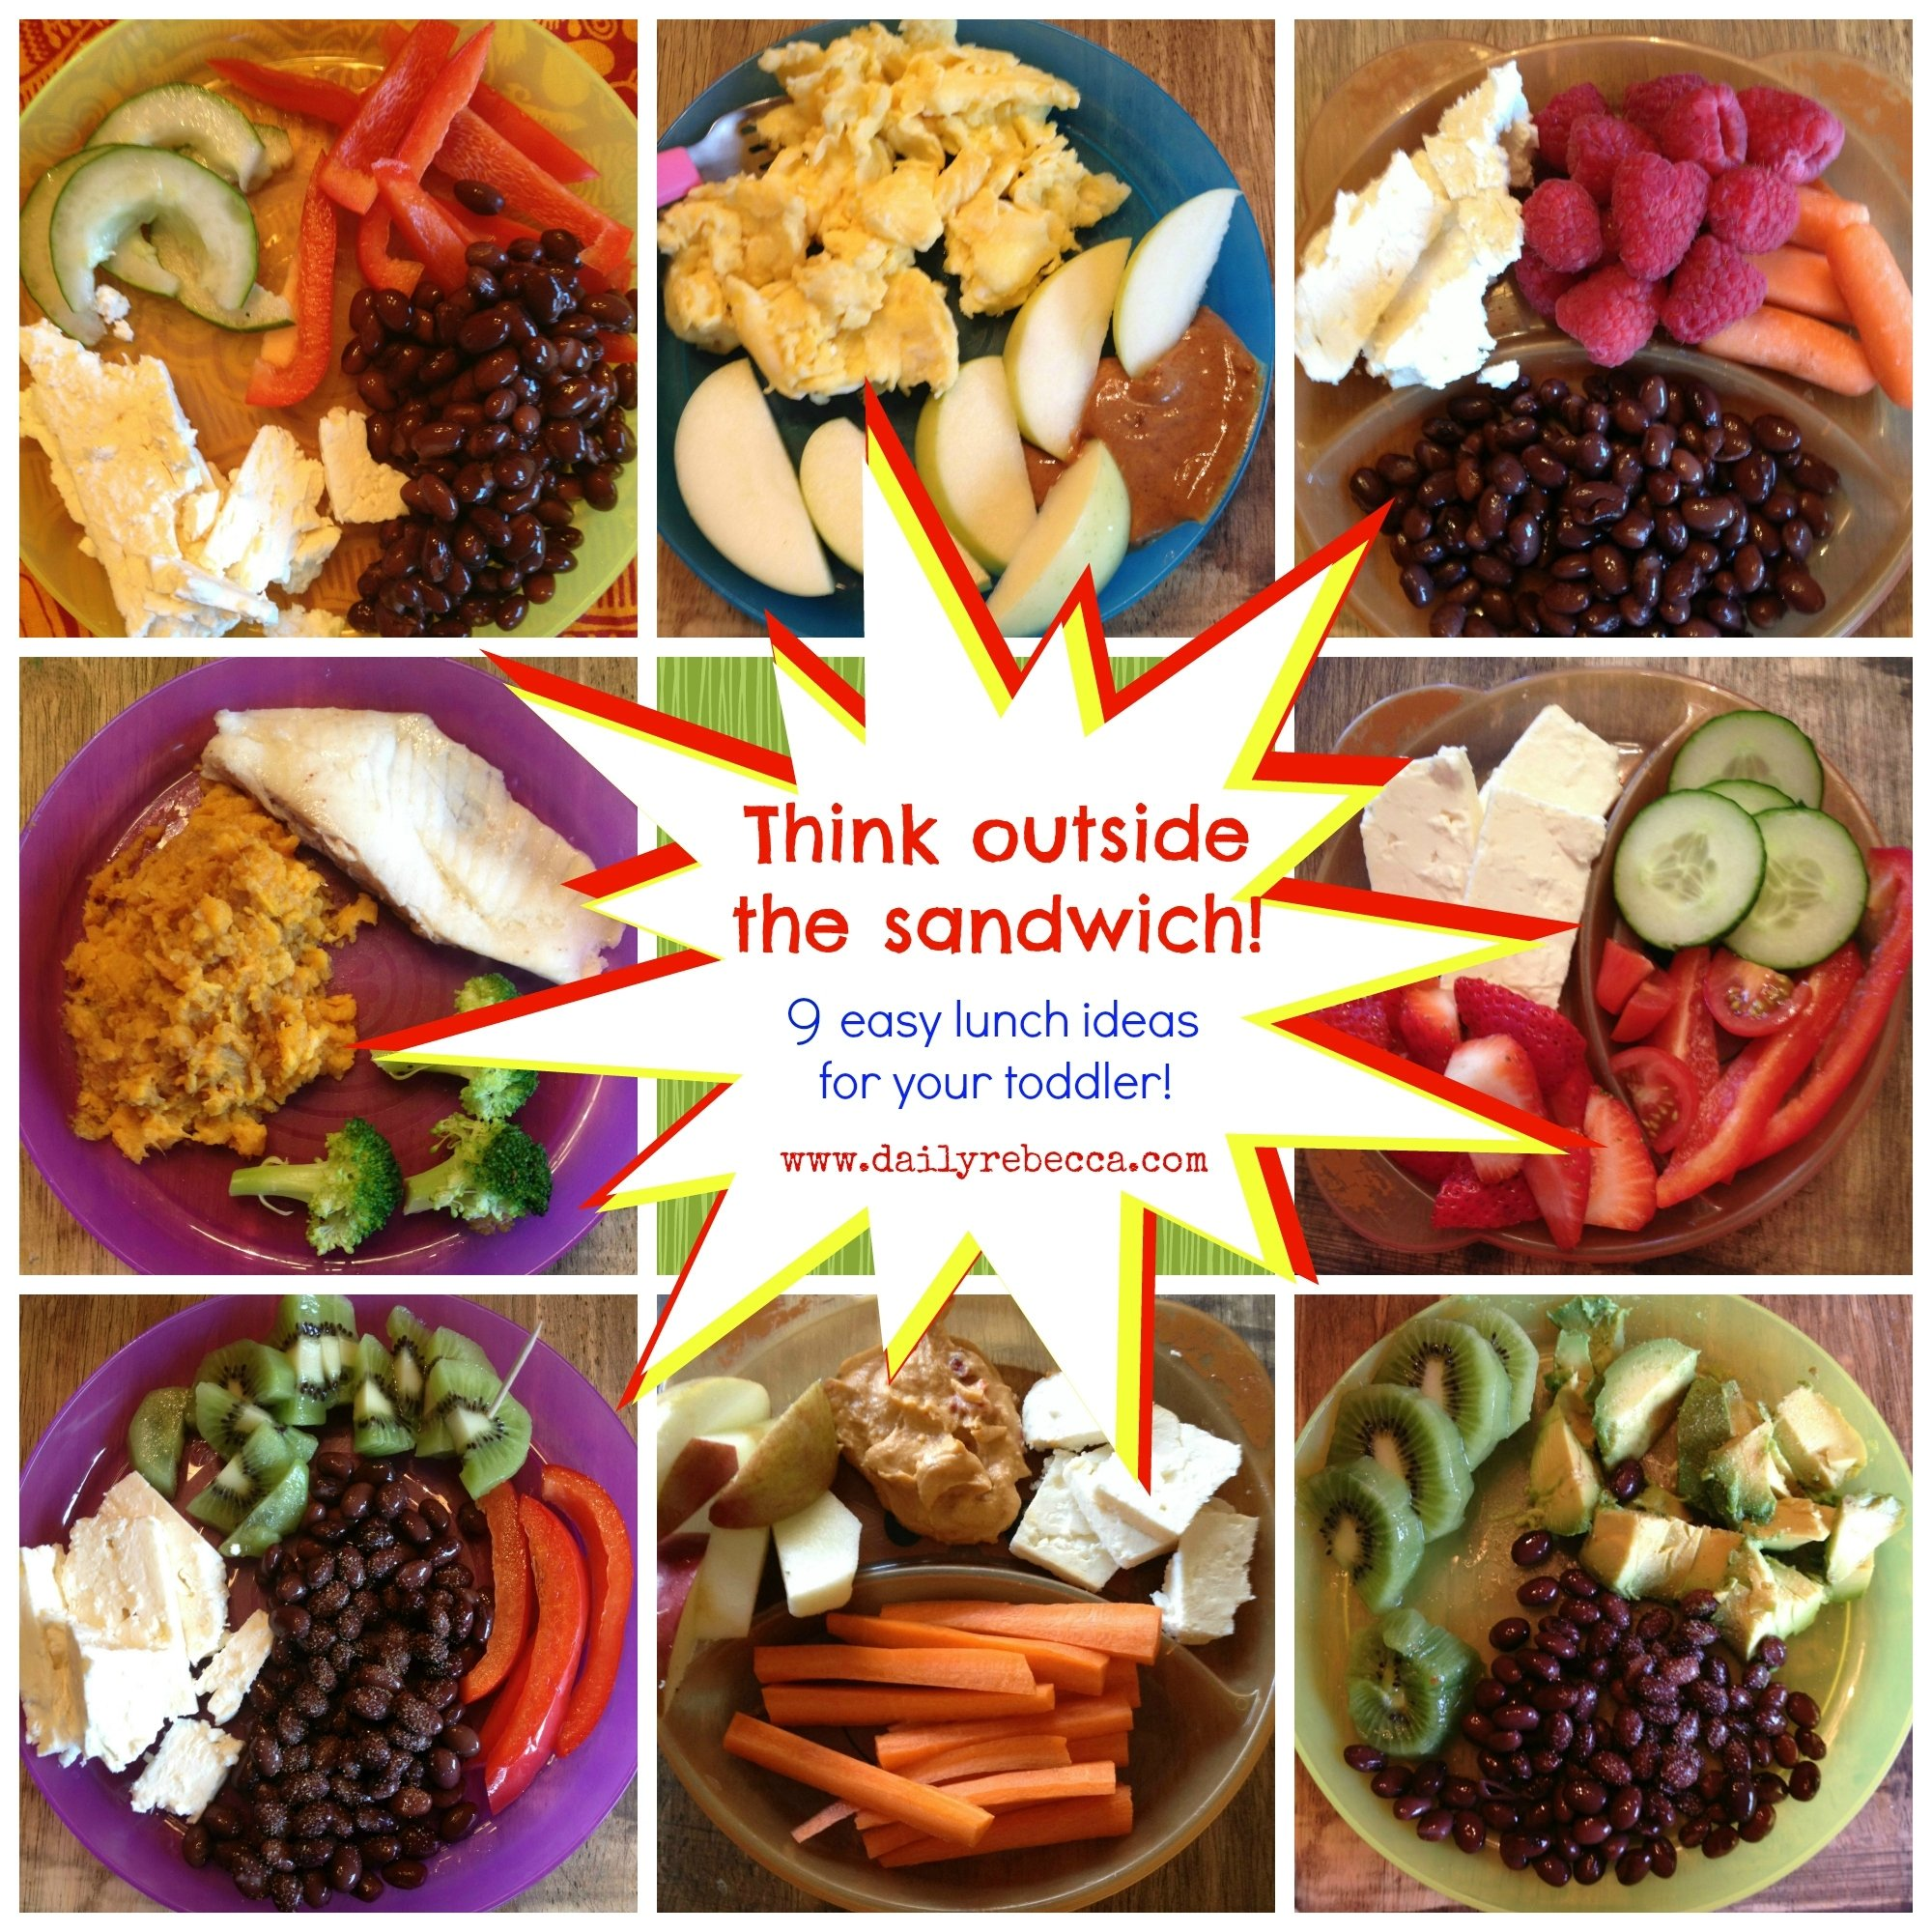 10 Most Popular Healthy Food Ideas For Toddlers think outside the sandwich 9 easy lunch ideas for your toddler 2 2020